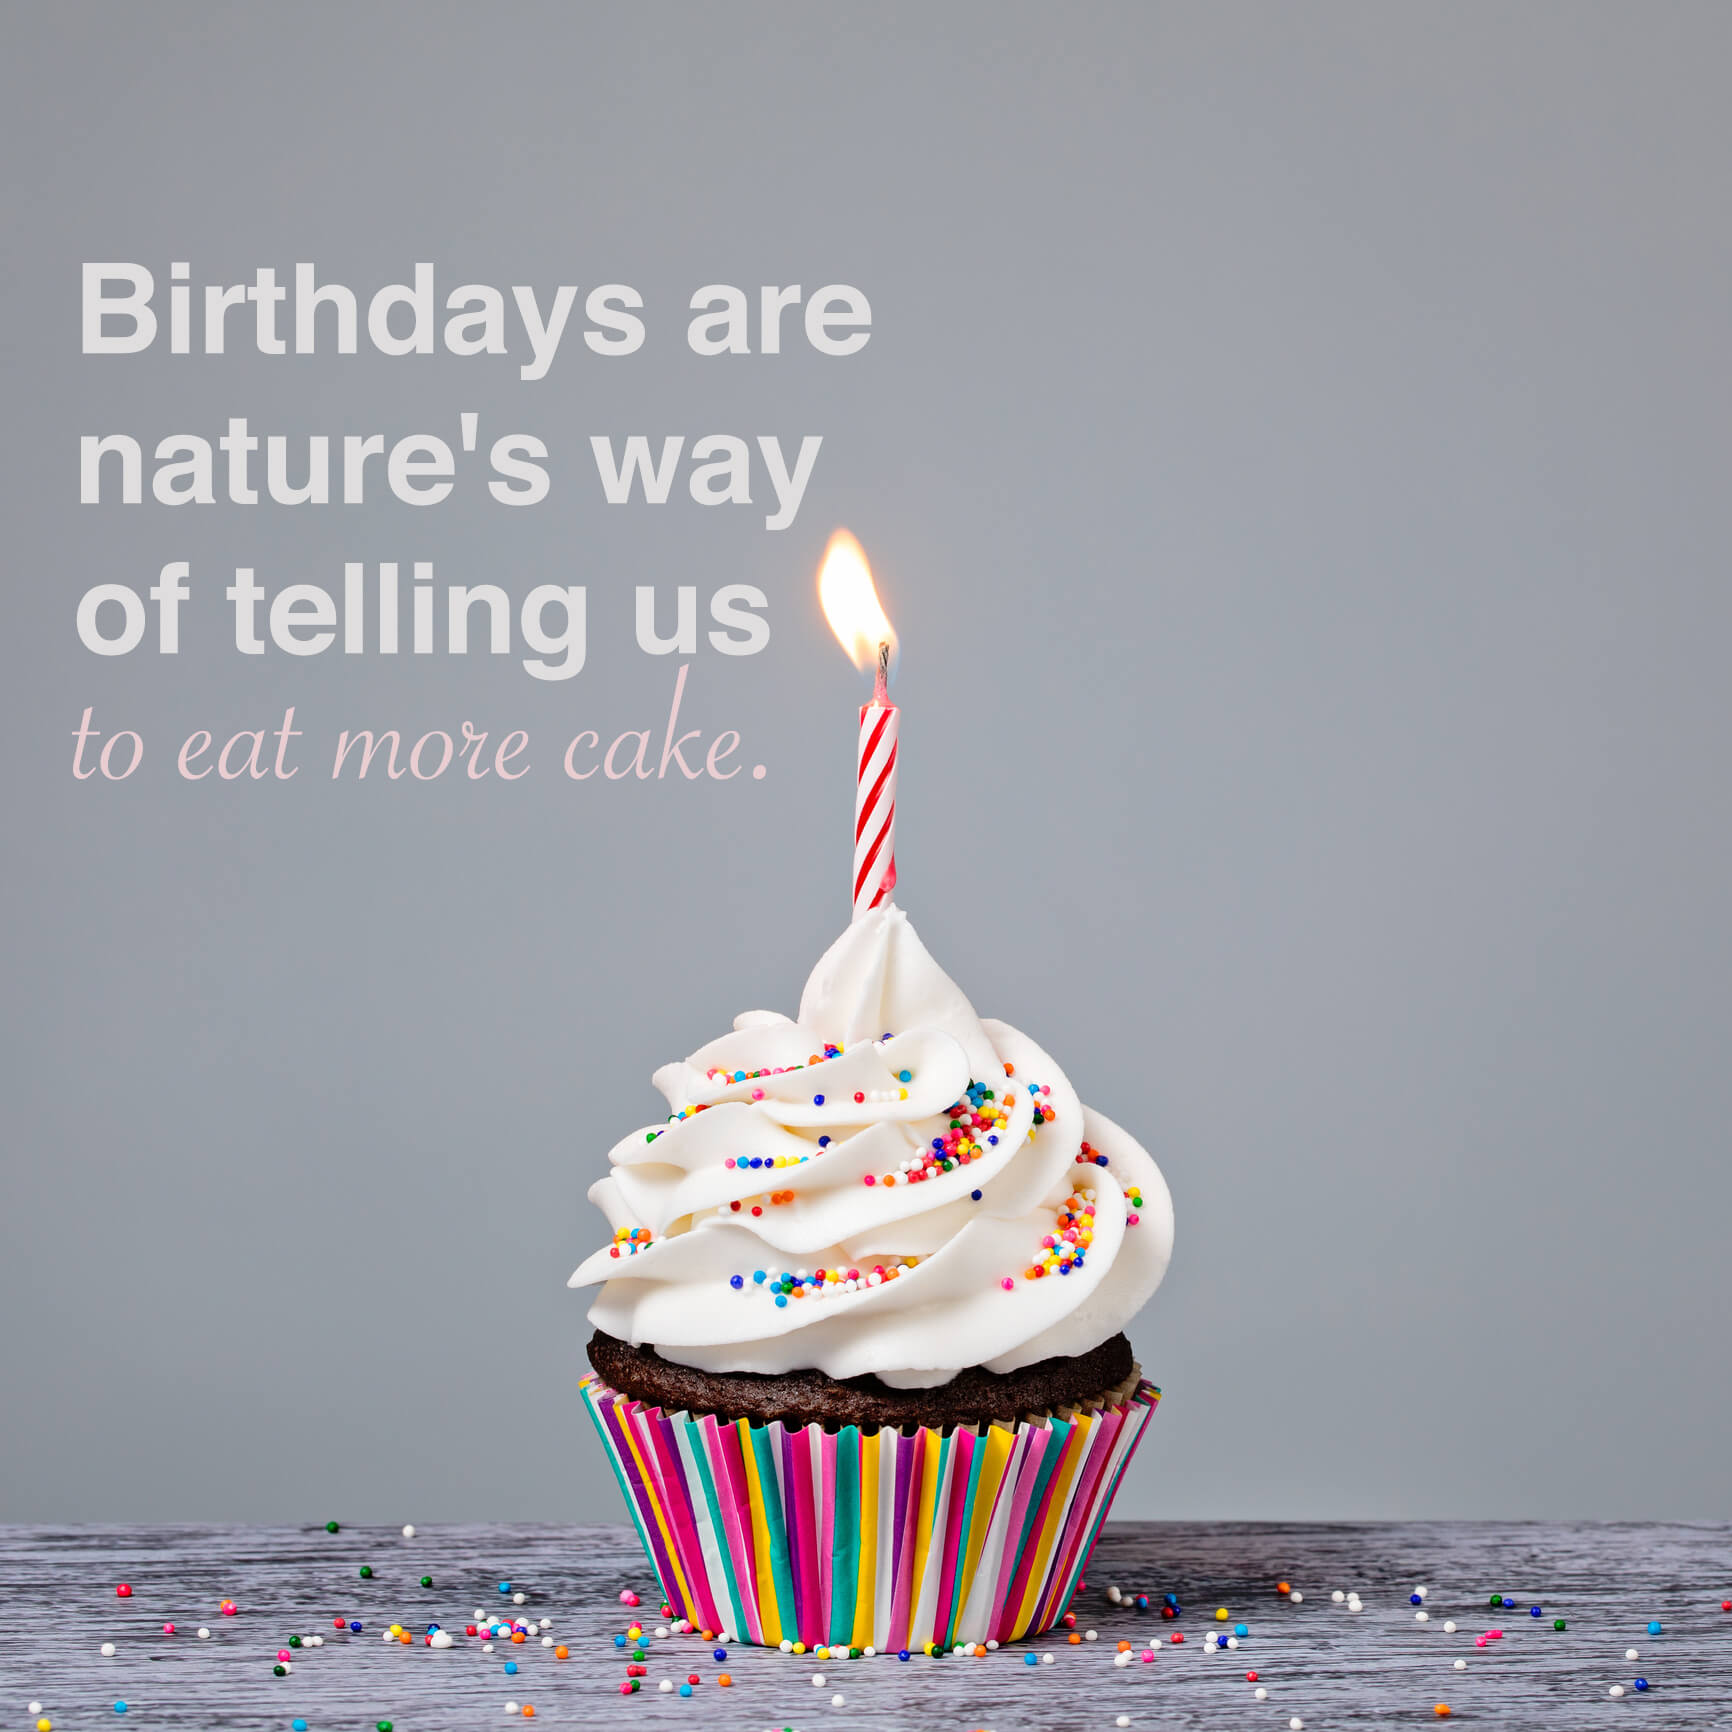 Fine 90 Birthday Instagram Captions For Anyone Shutterfly Personalised Birthday Cards Paralily Jamesorg